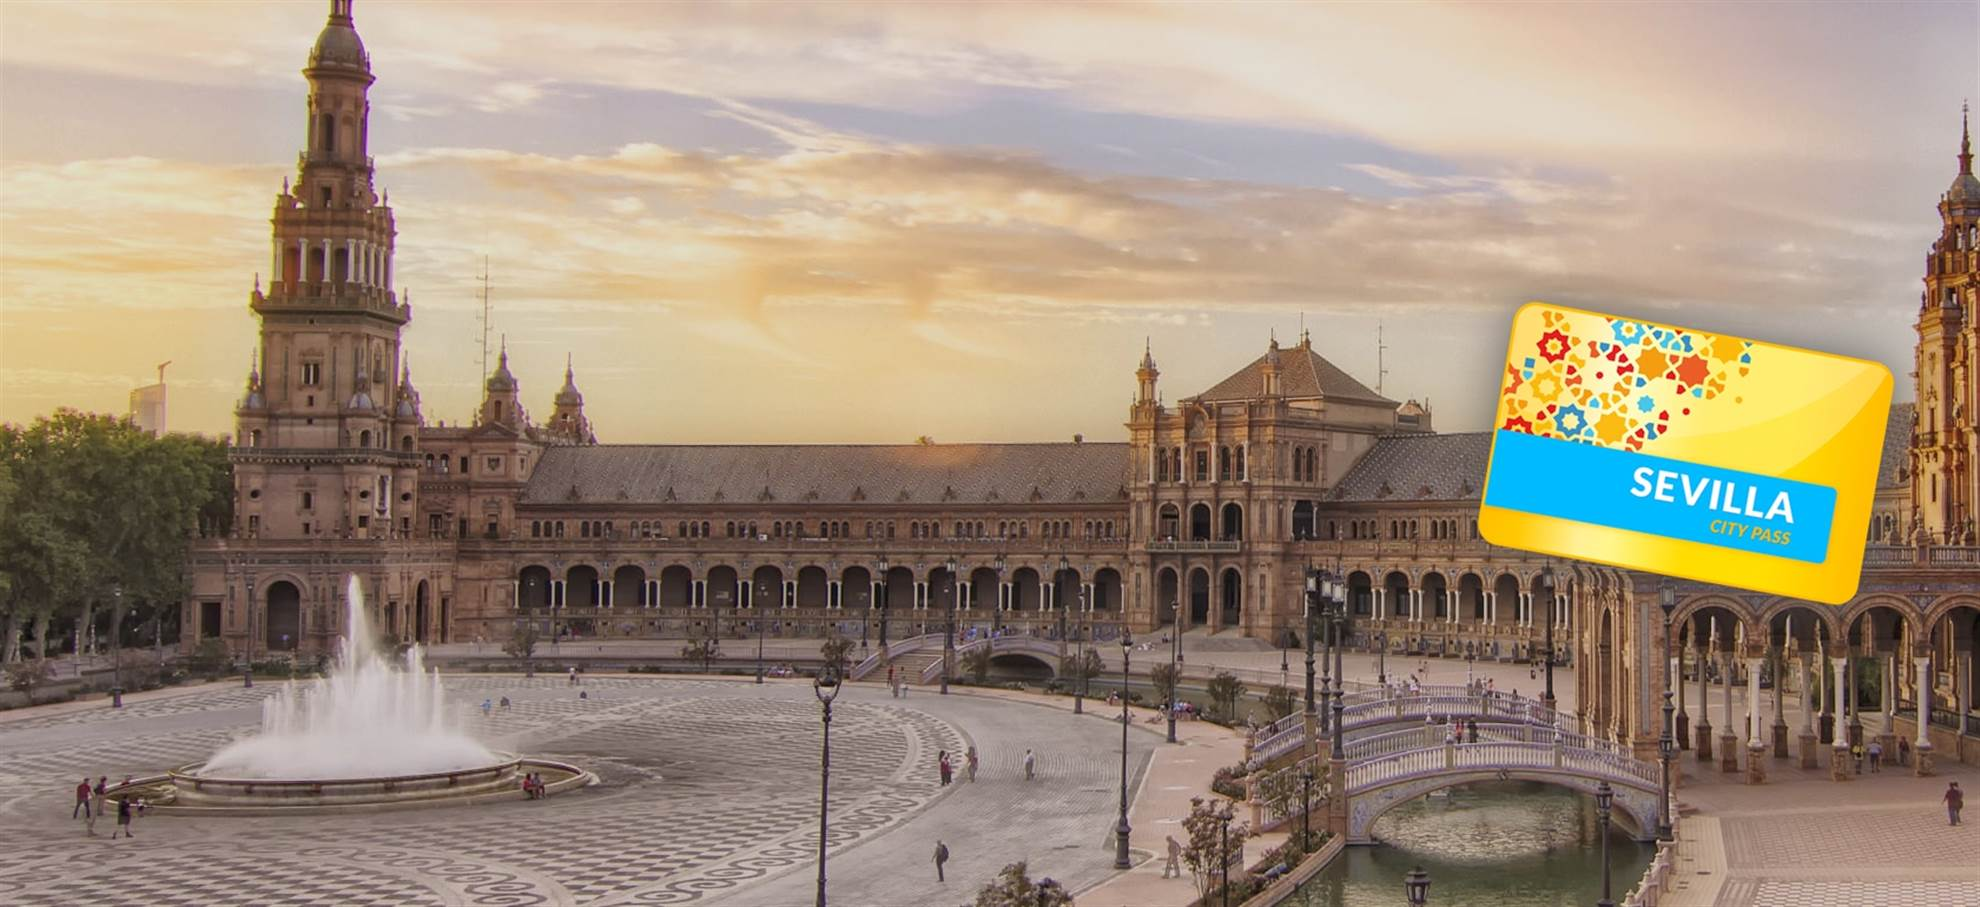 Seville City Pass (Alcazar, Cathedral, Public Transport)